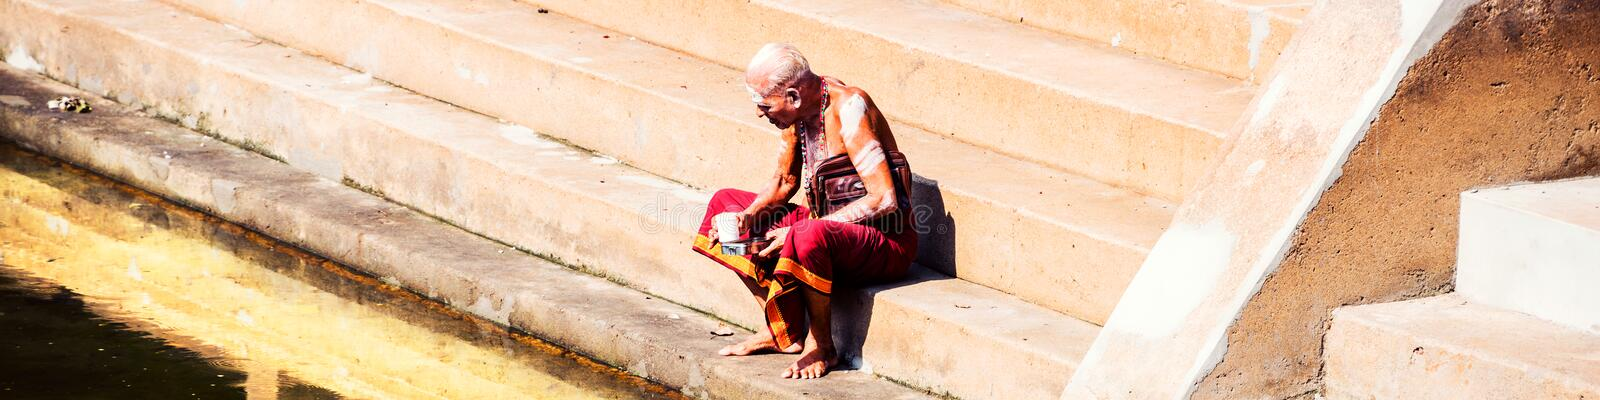 Old man wearing typical robe siting at Sree Padmanabhaswamy Temple pool during the sunny day in Trivandrum, India. TRIVANDRUM, INDIA - MAY 15, 2016: Old man royalty free stock image